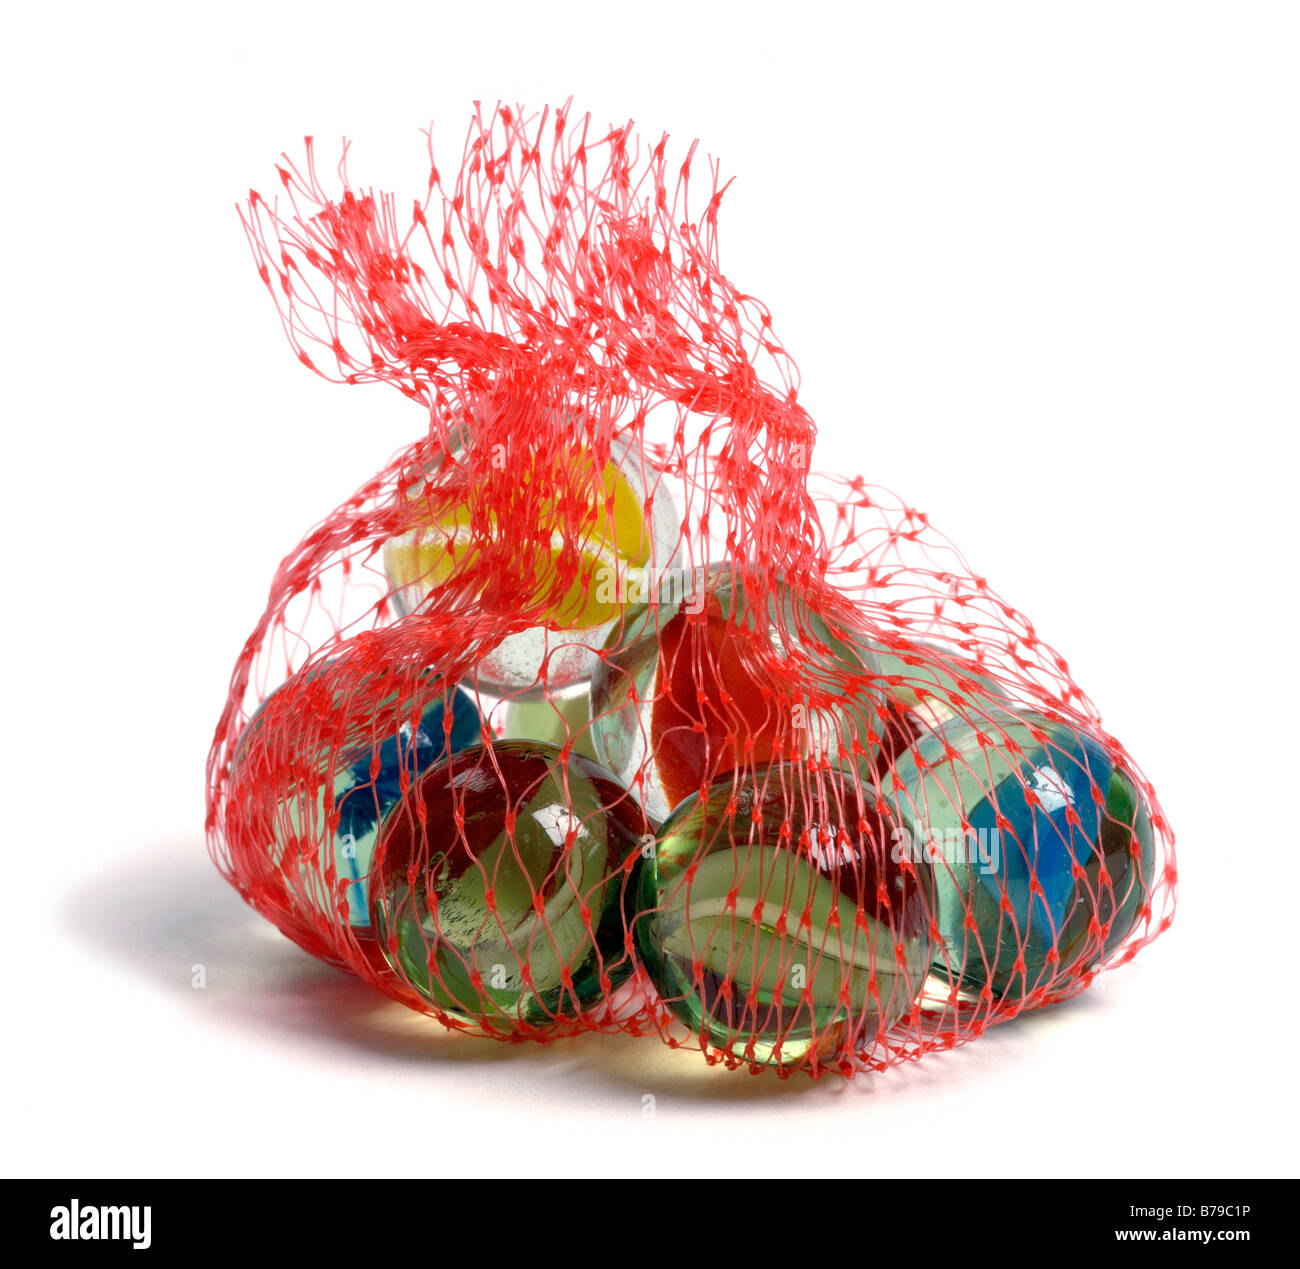 Small bag of glass marbles - Stock Image